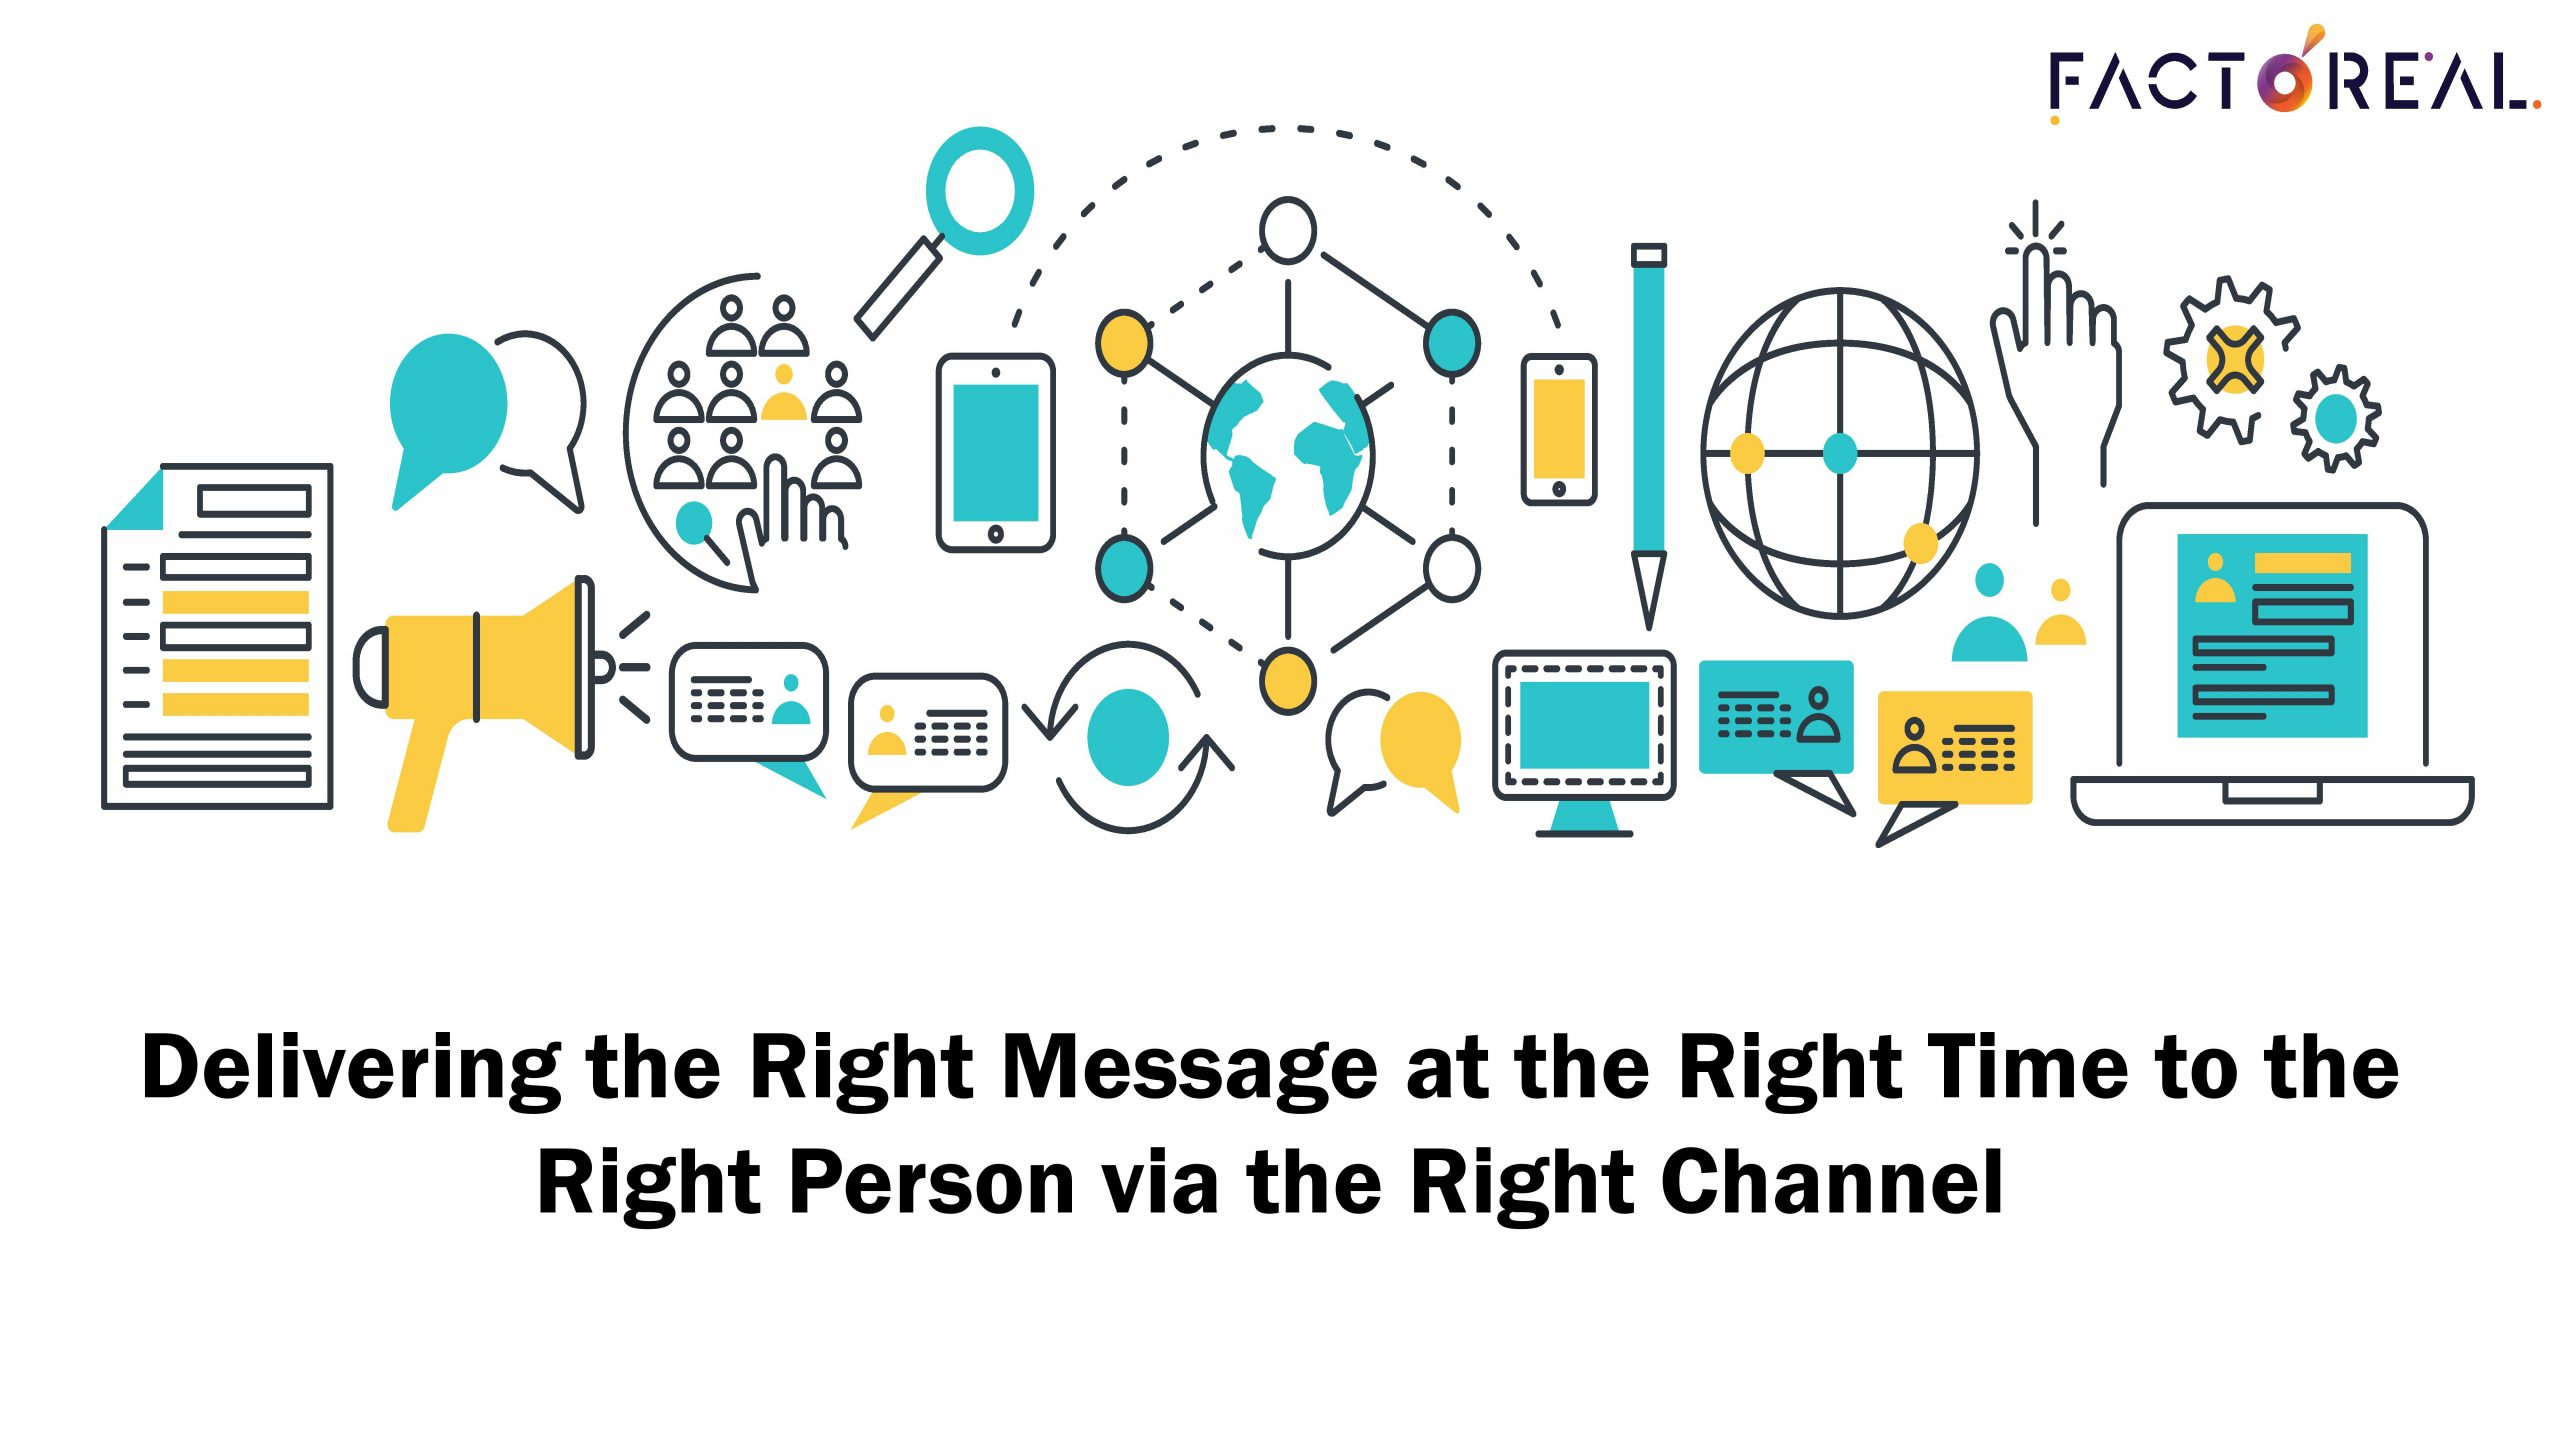 Delivering the Right Message at the Right Time to the Right Person via the Right Channel